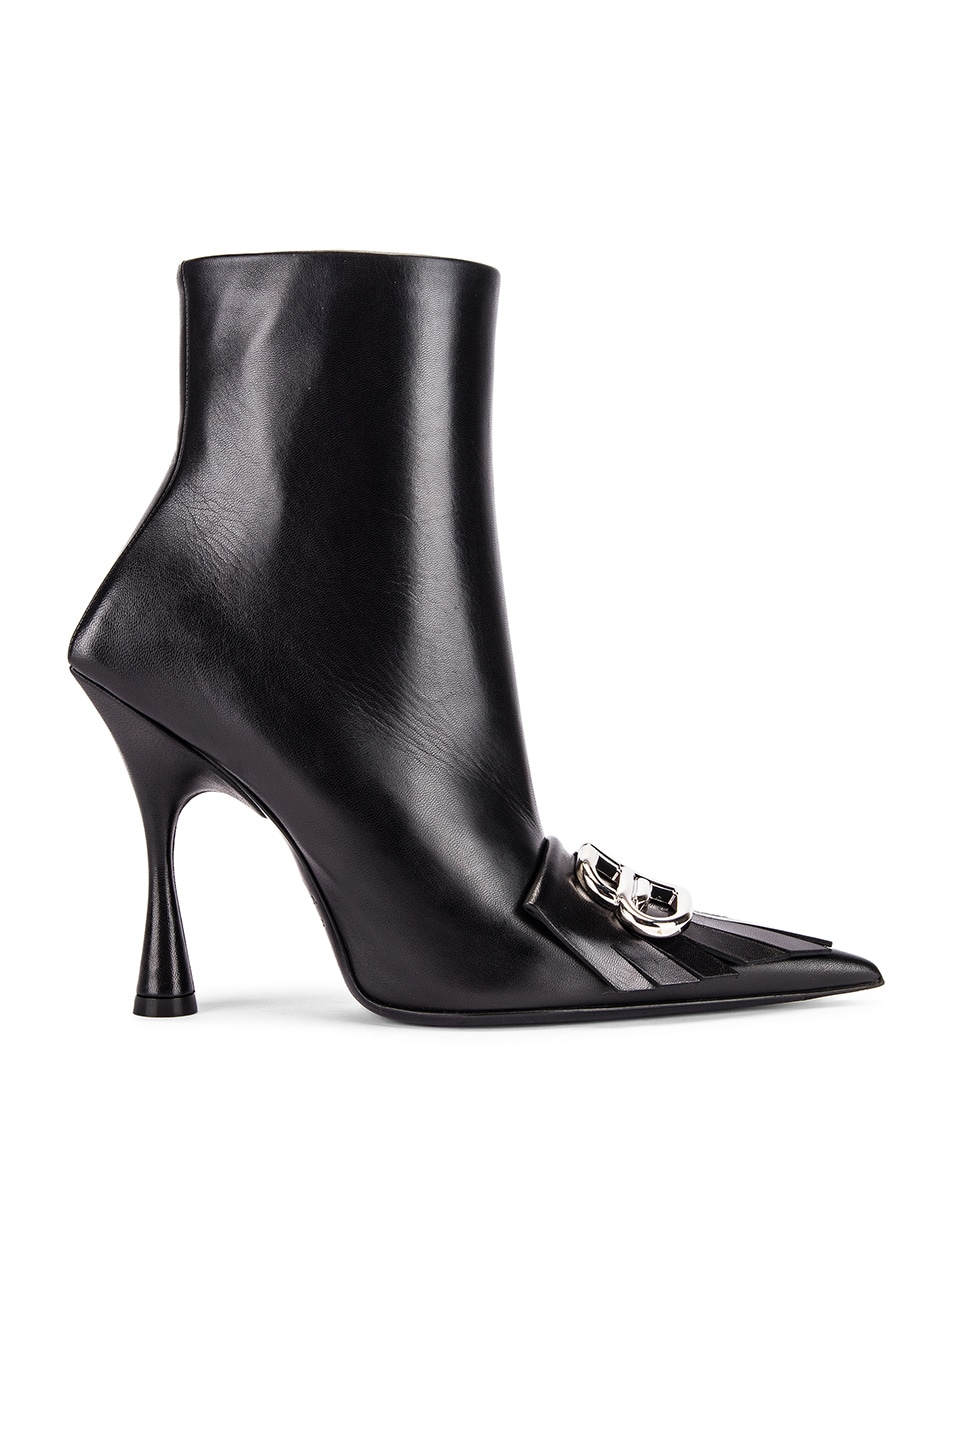 Image 2 of Balenciaga Fringe Knife Booties in Black & Silver